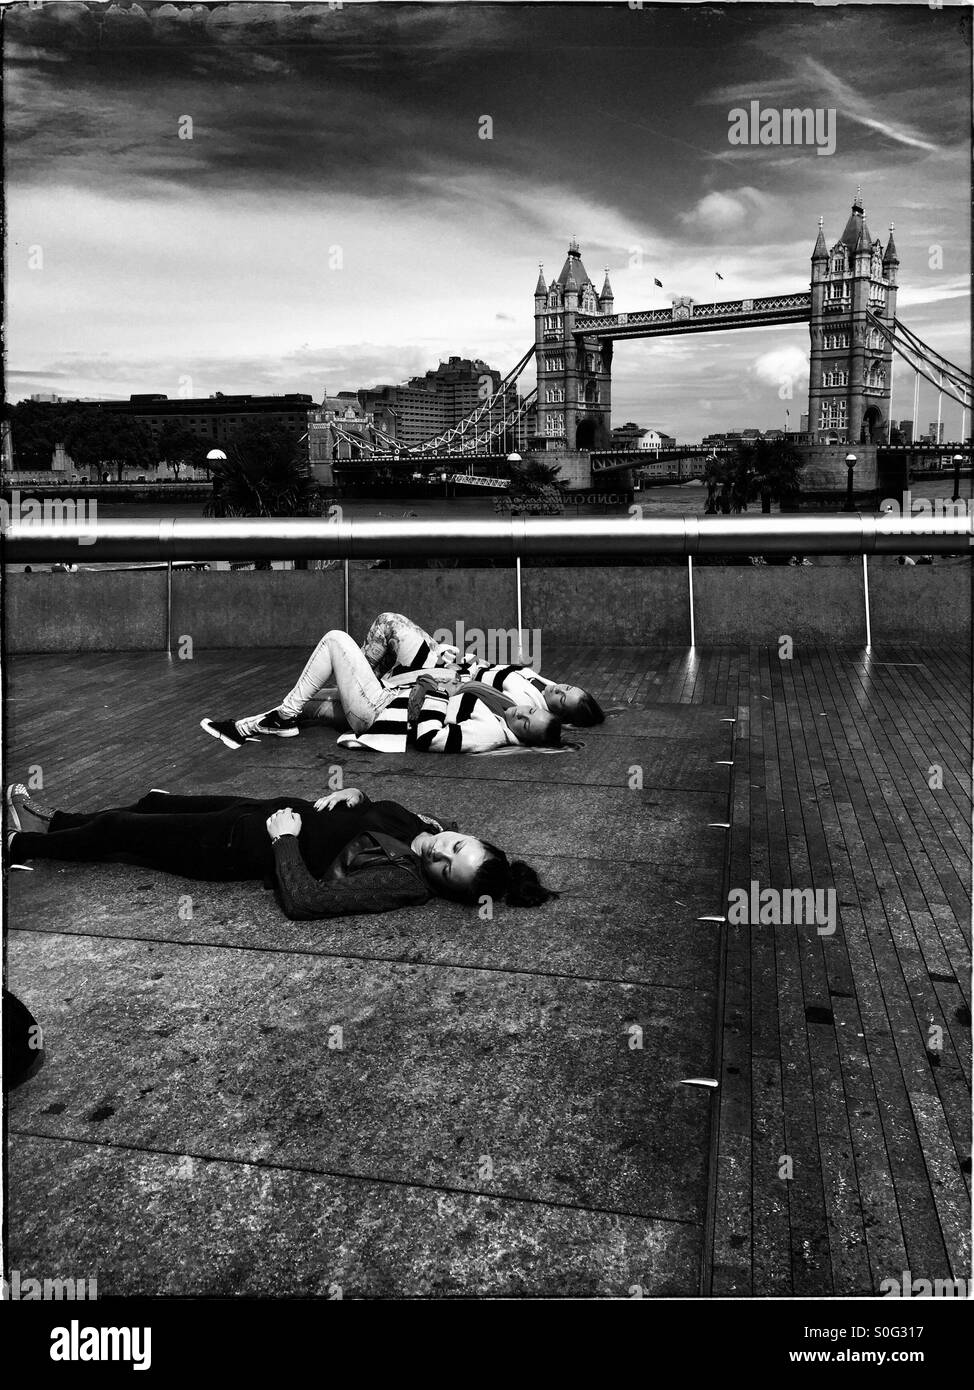 Summer in London. - Stock Image